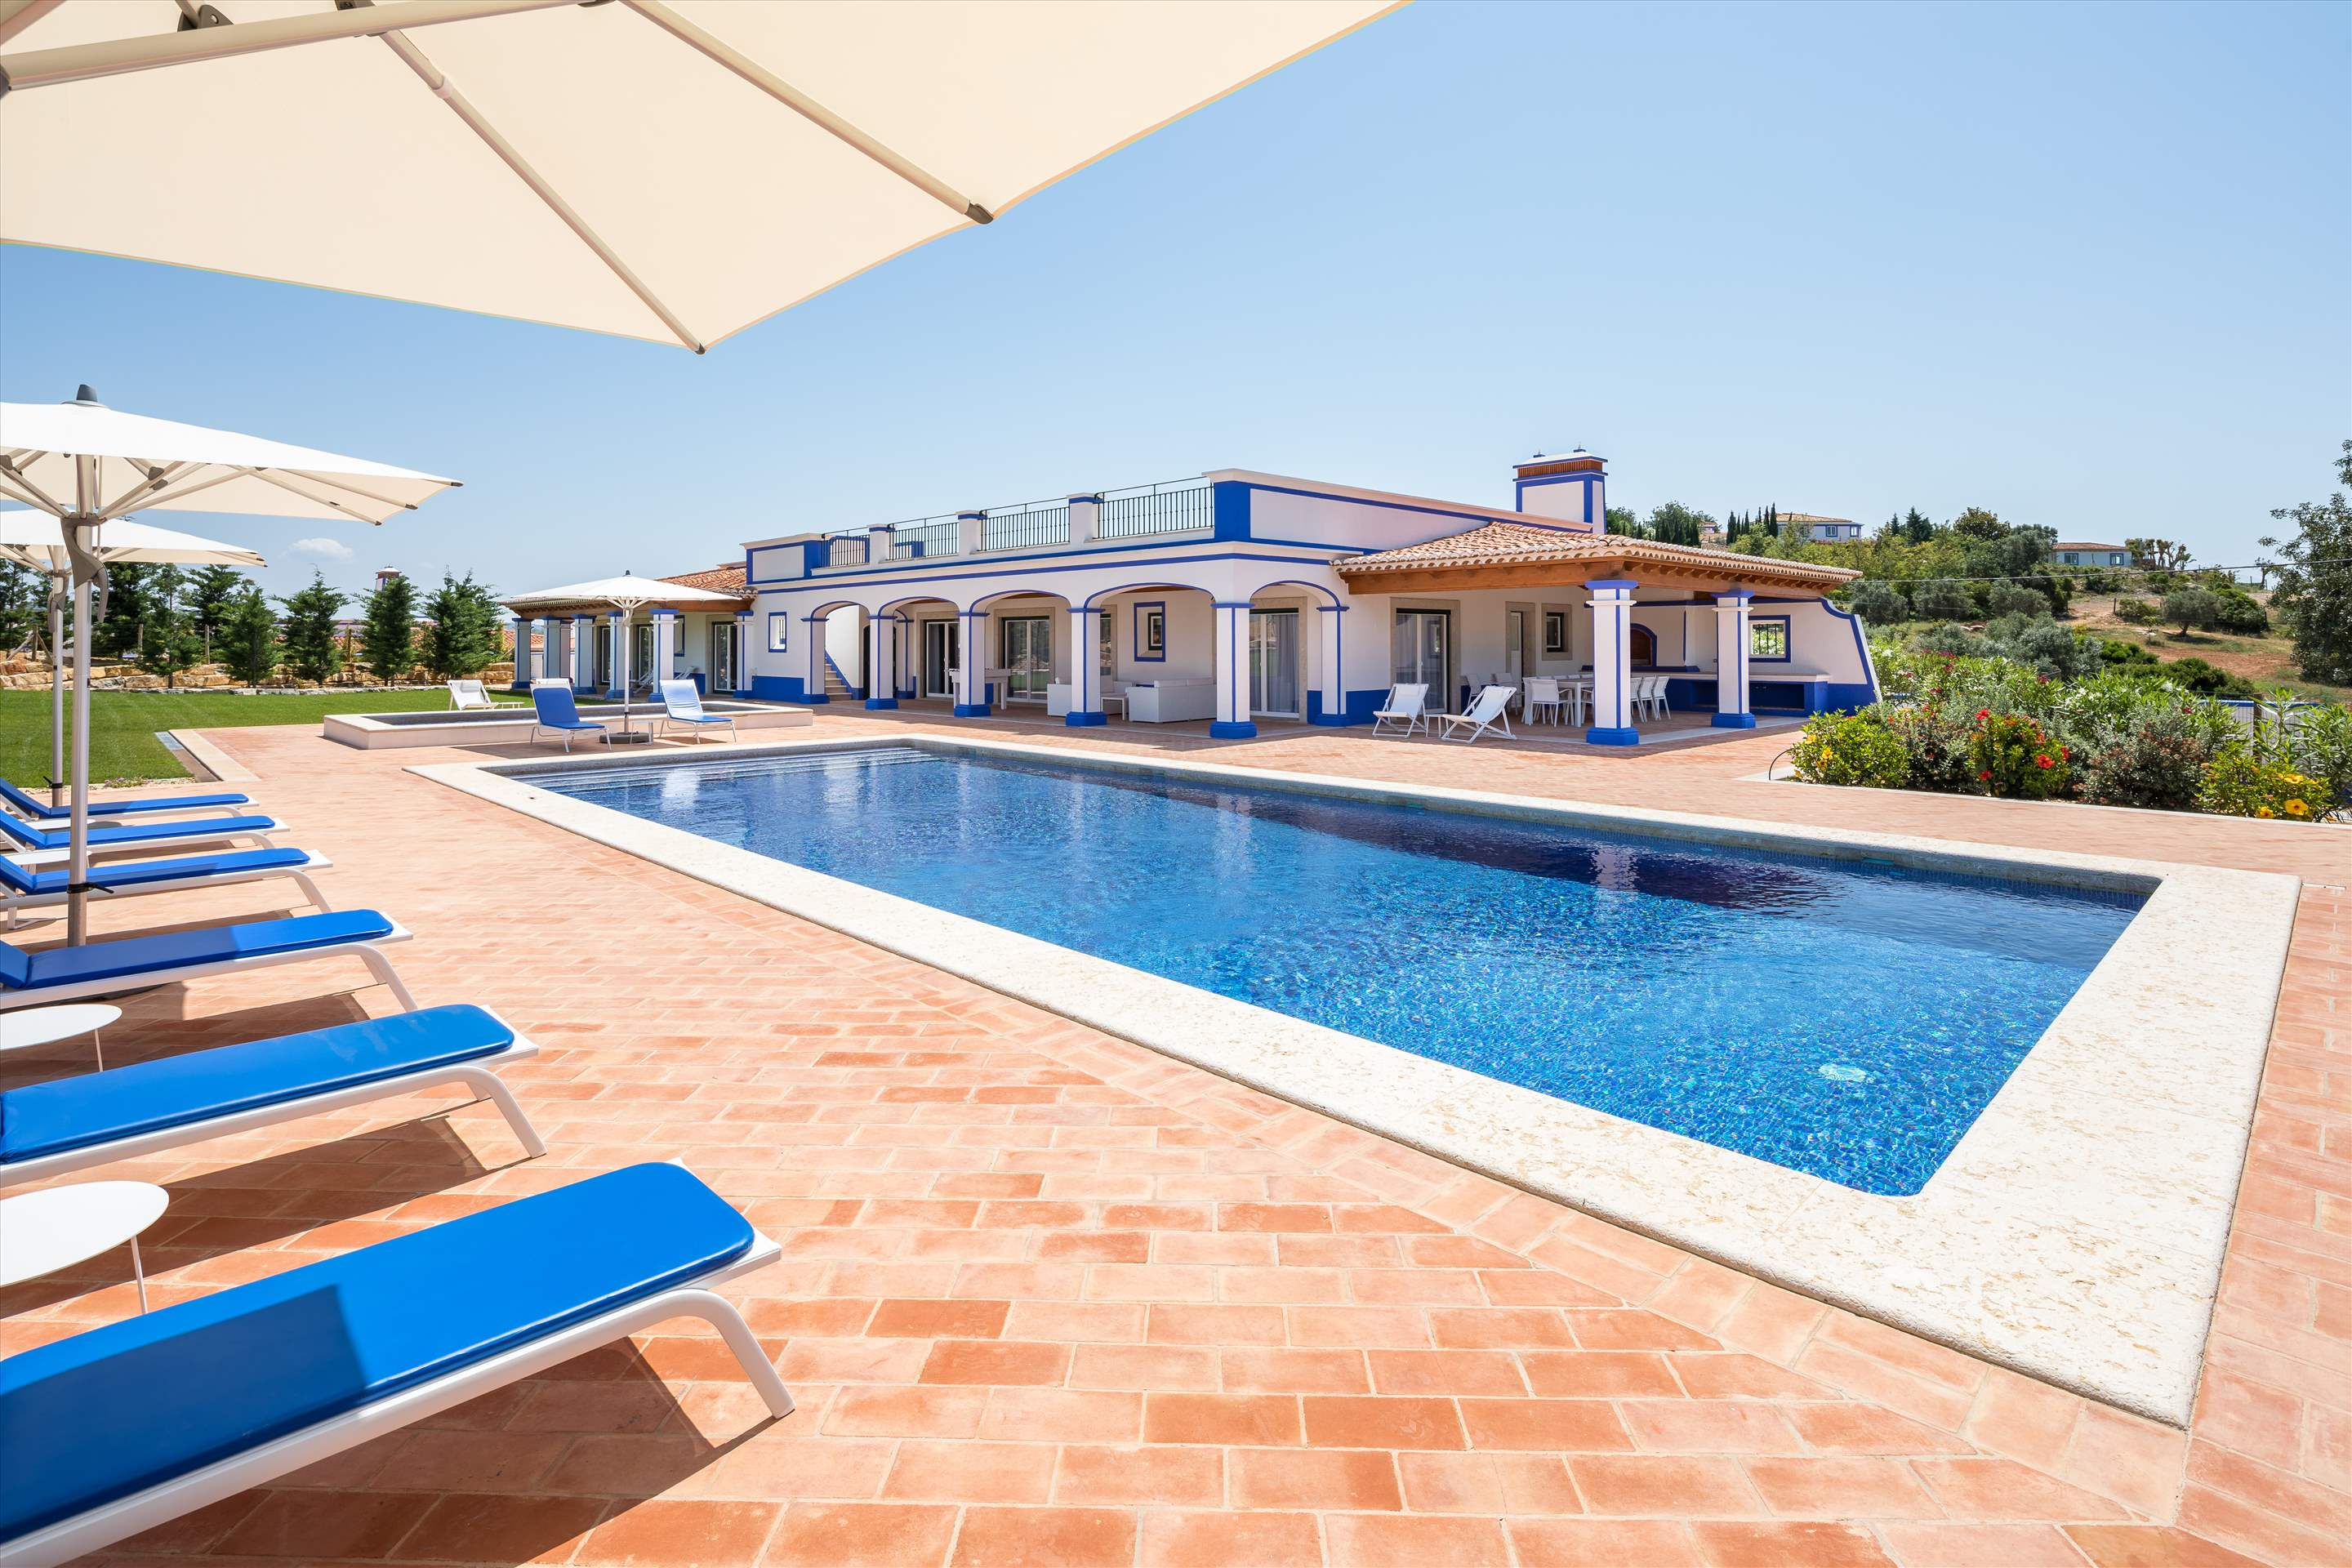 Villa Sky, 4 bedroom villa in Vilamoura Area, Algarve